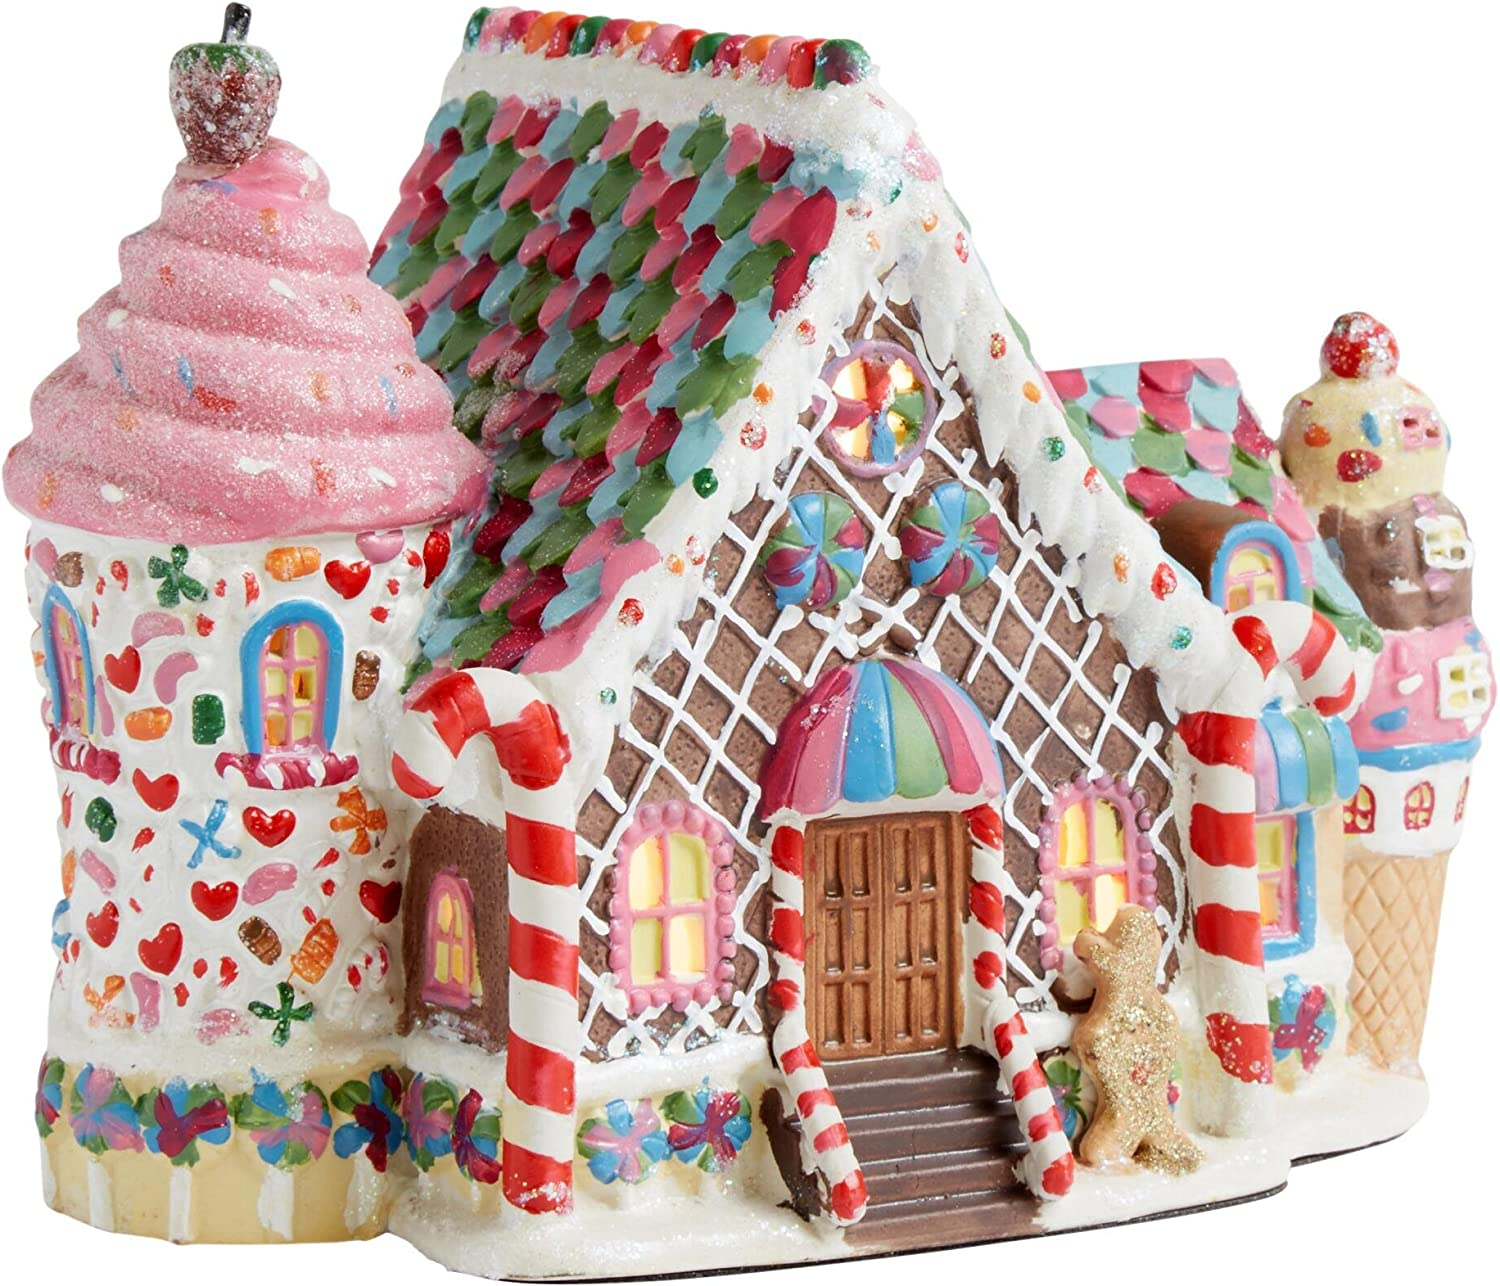 Holiday Christmas Lighted Porcelain House - Gingerbread Sweets